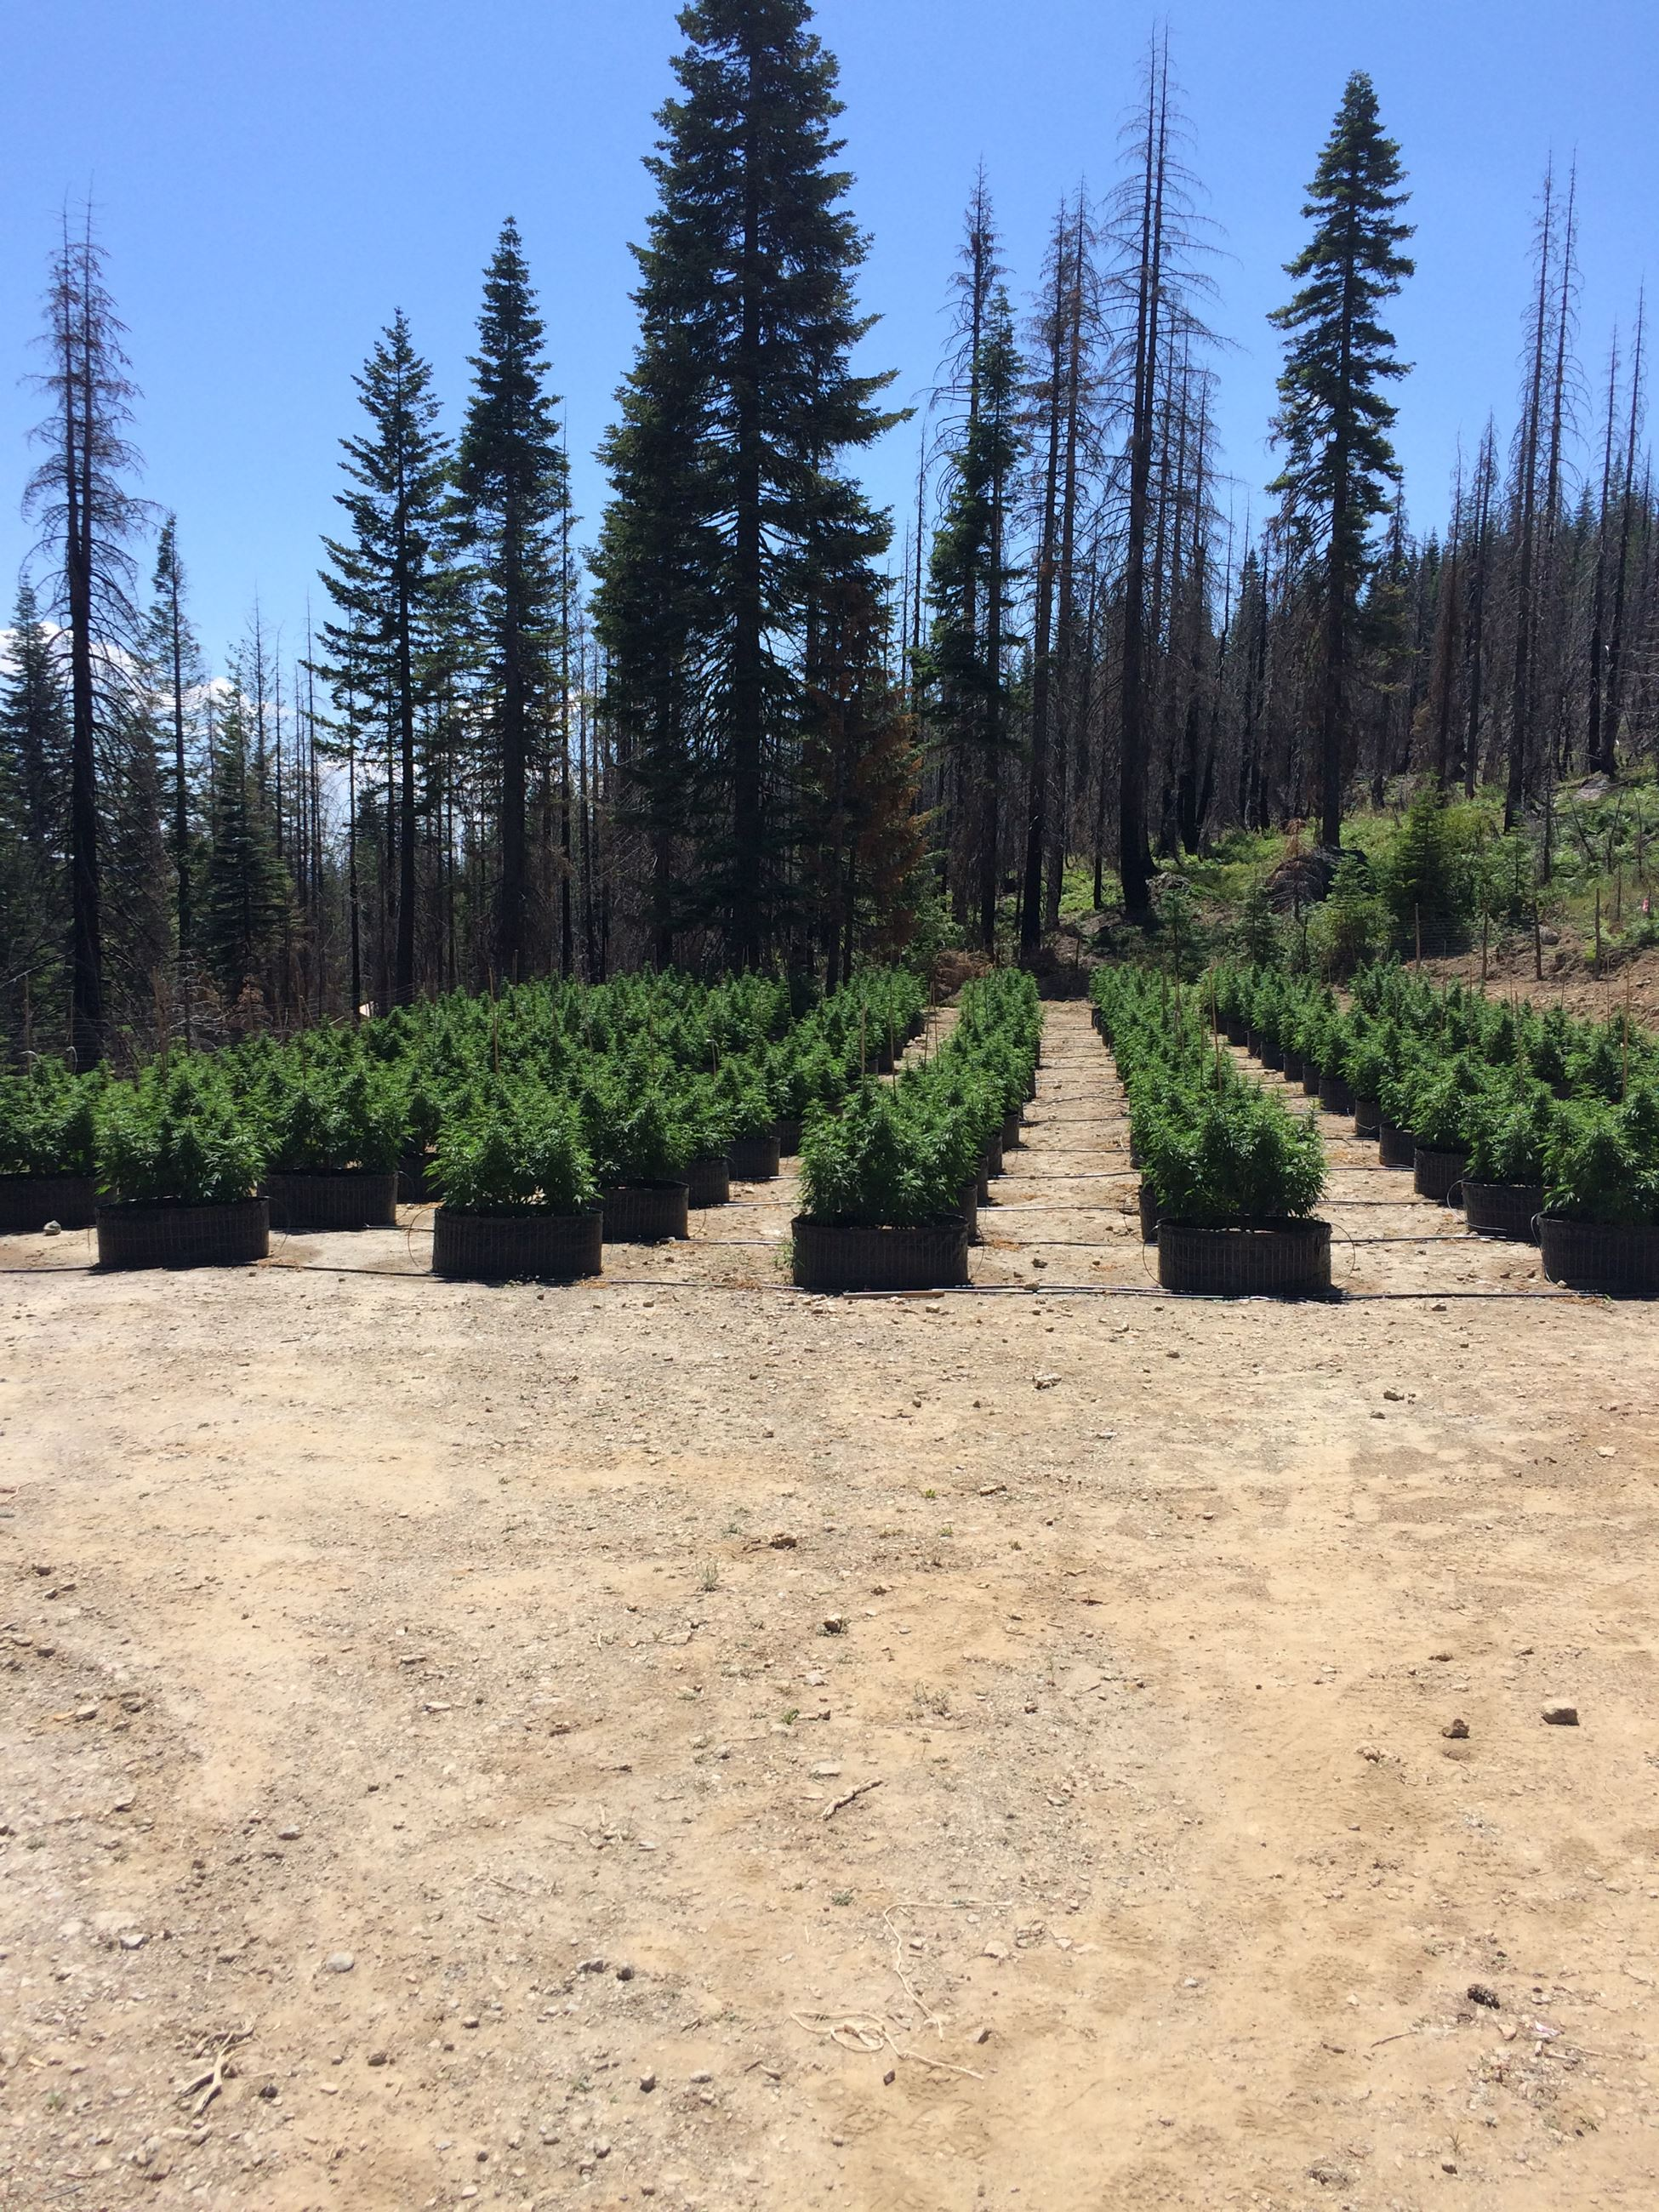 outdoor growing marijuana plants